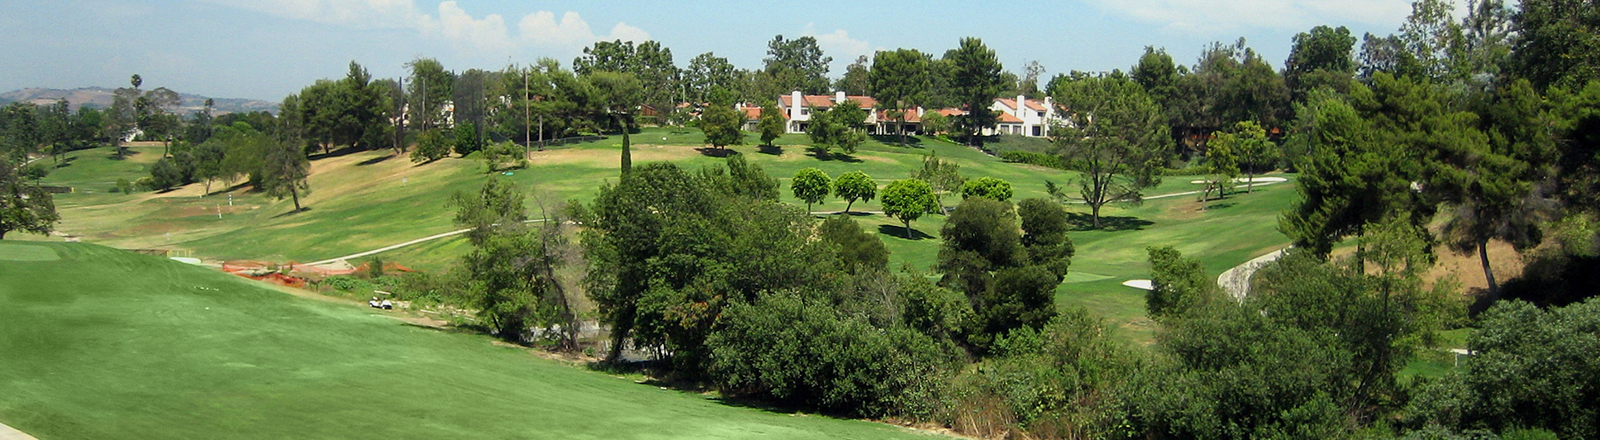 Fullerton Golf Course Header